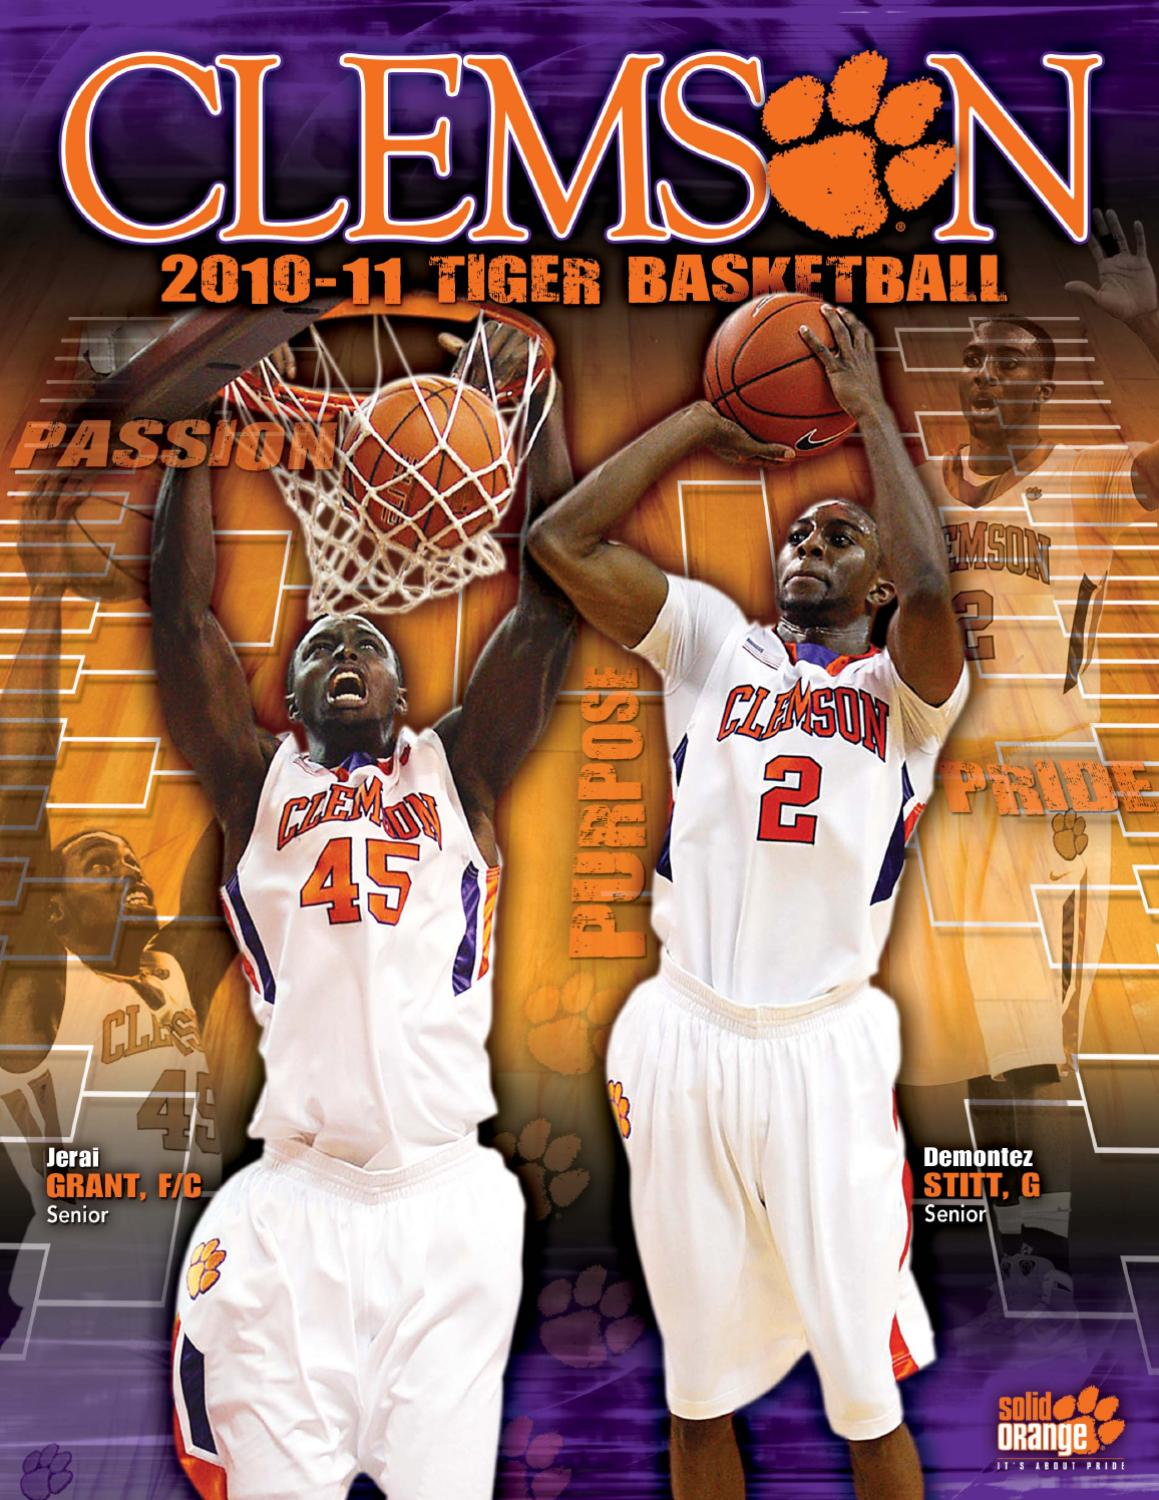 new arrival f7b86 7b6ba 2010-11 Clemson Men s Basketball Media Guide by Clemson Tigers - issuu